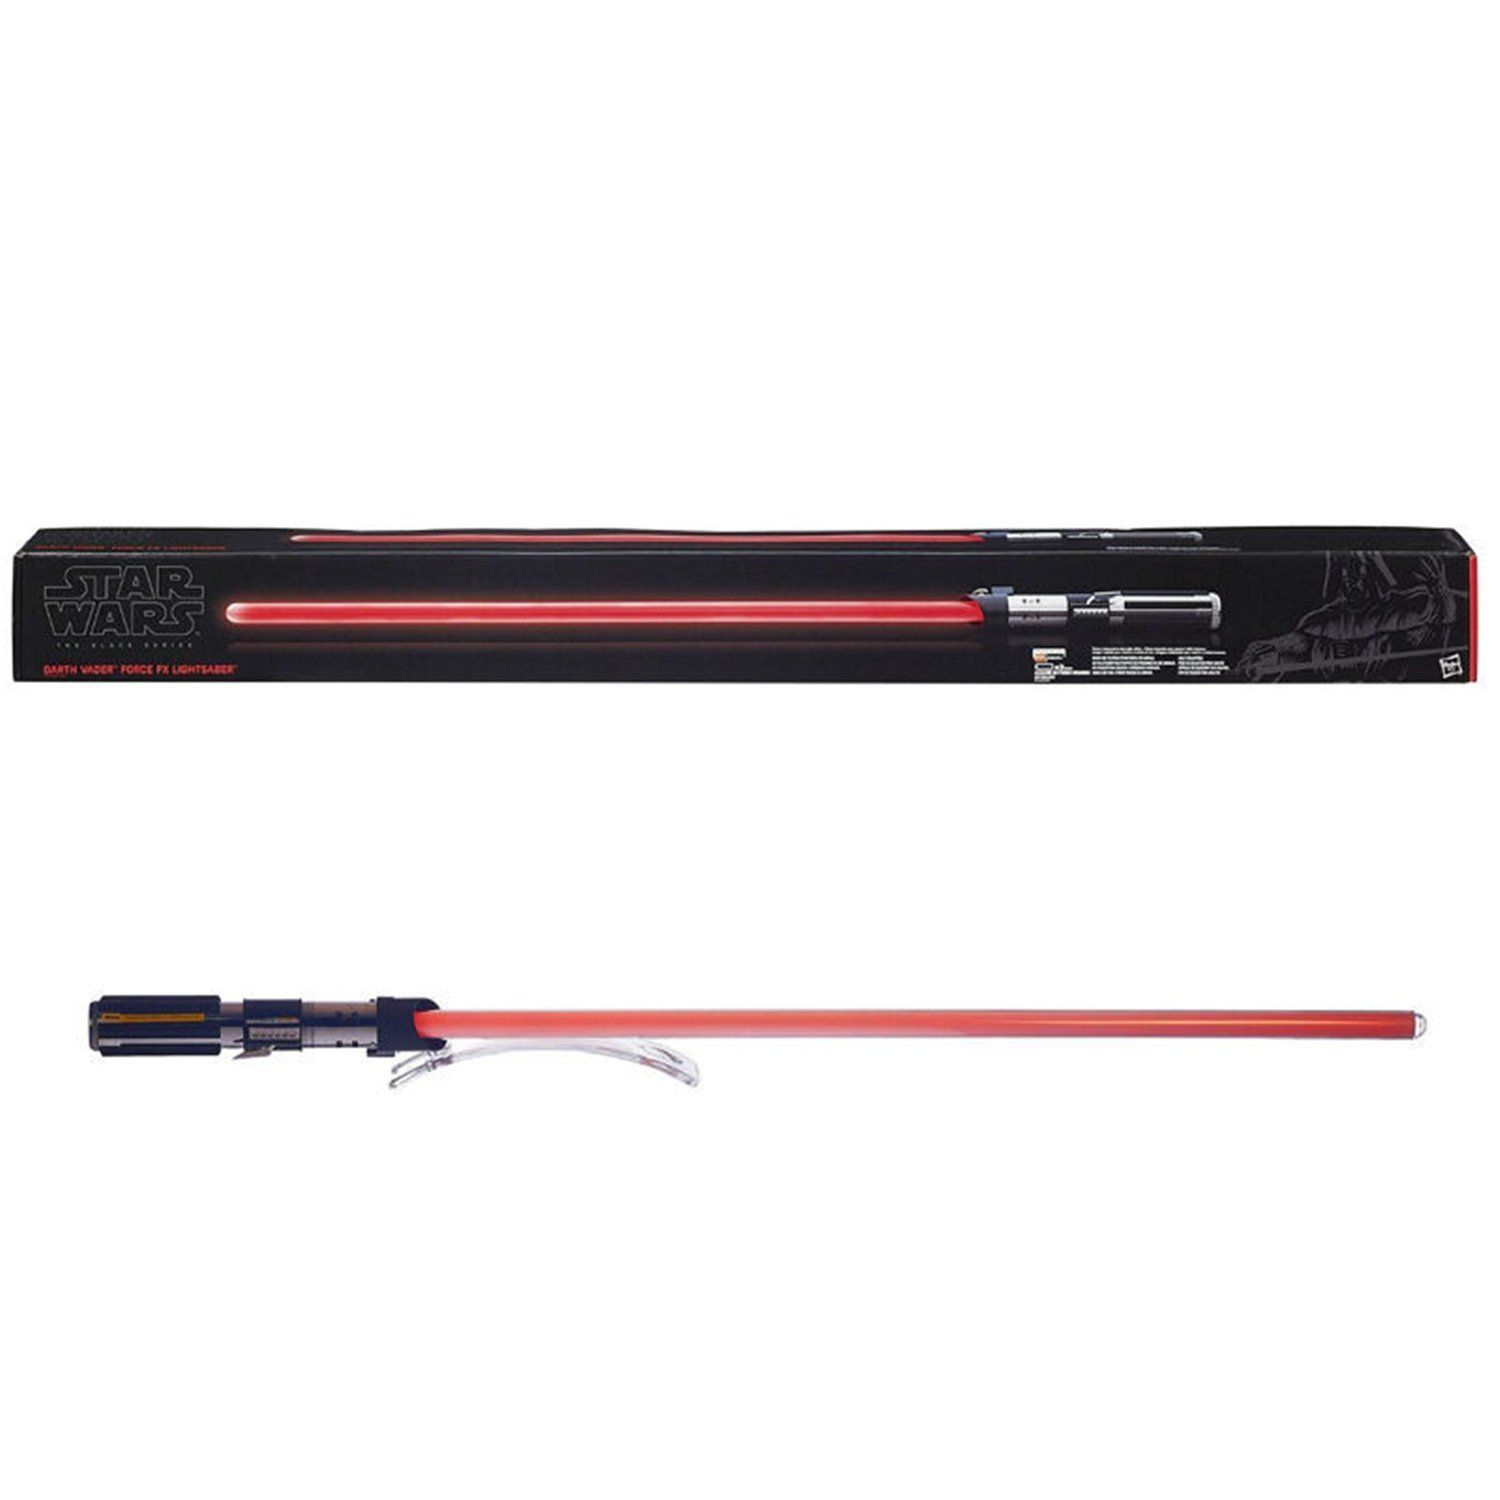 Awesome Top 10 Best Force FX Lightsabers in 2017 Reviews